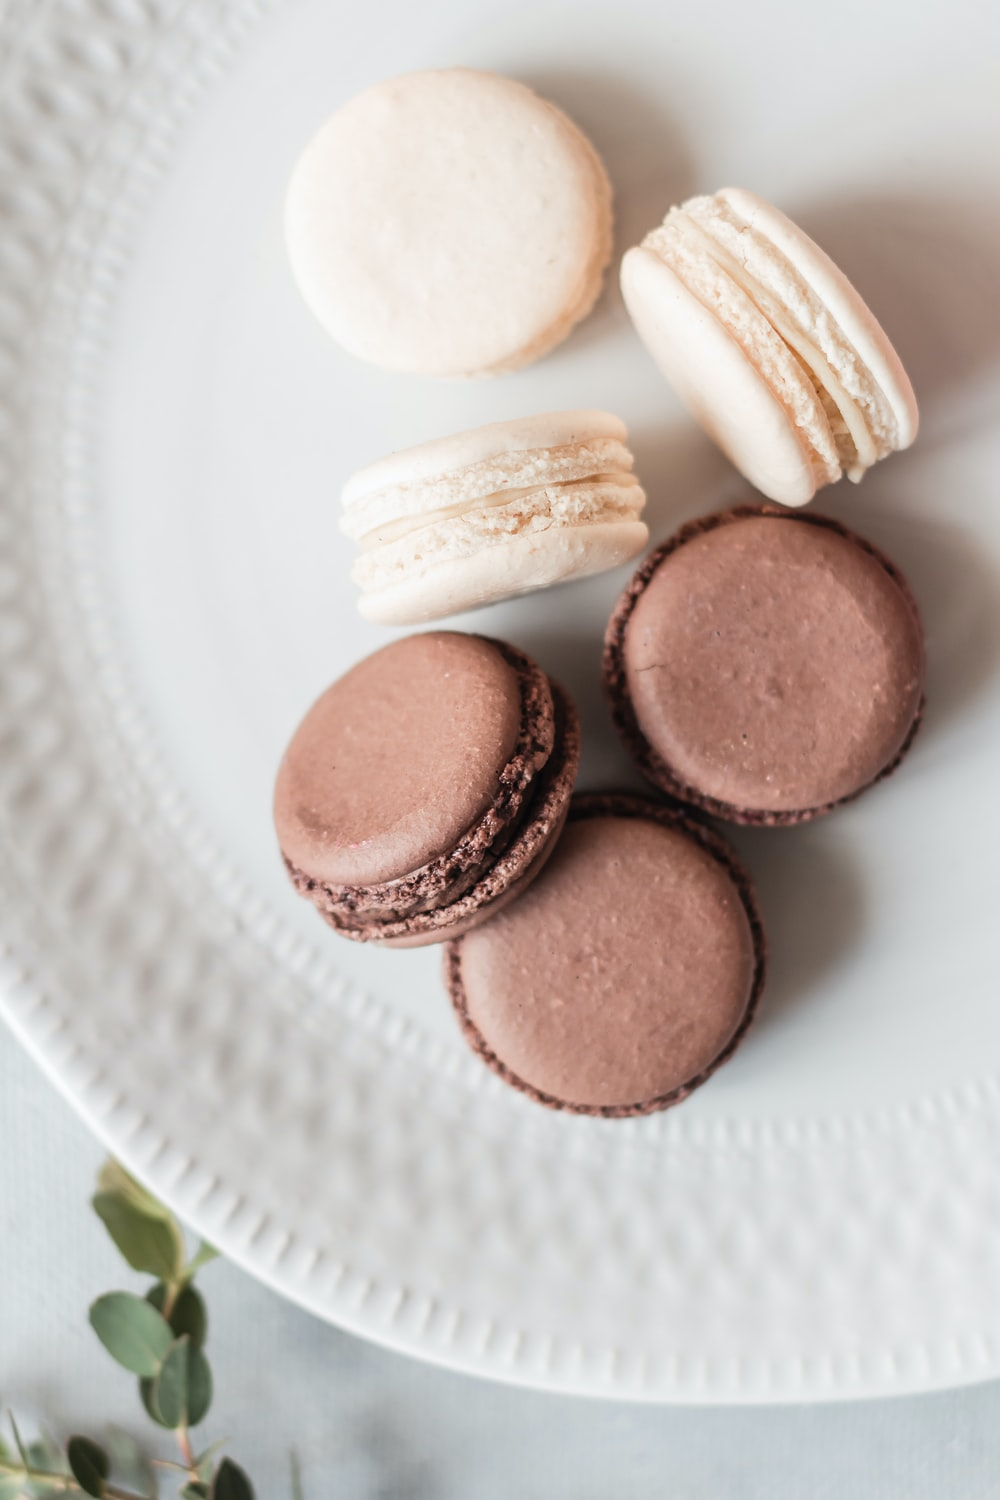 brown round cookies on white ceramic plate